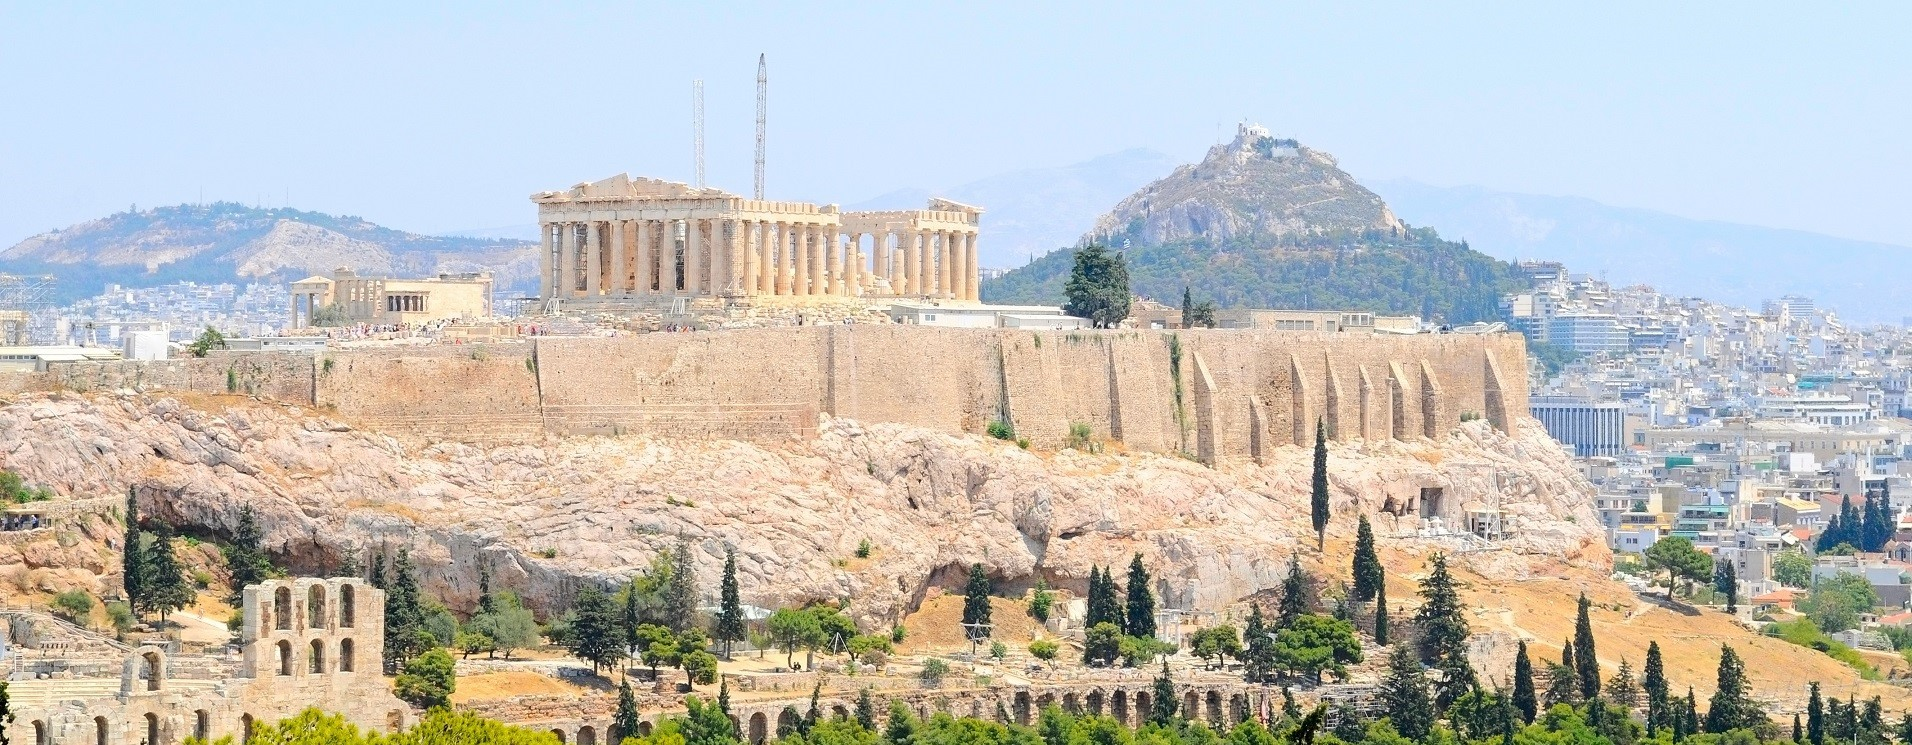 Early Access to the Acropolis of Athens Semi Private Walking Tour